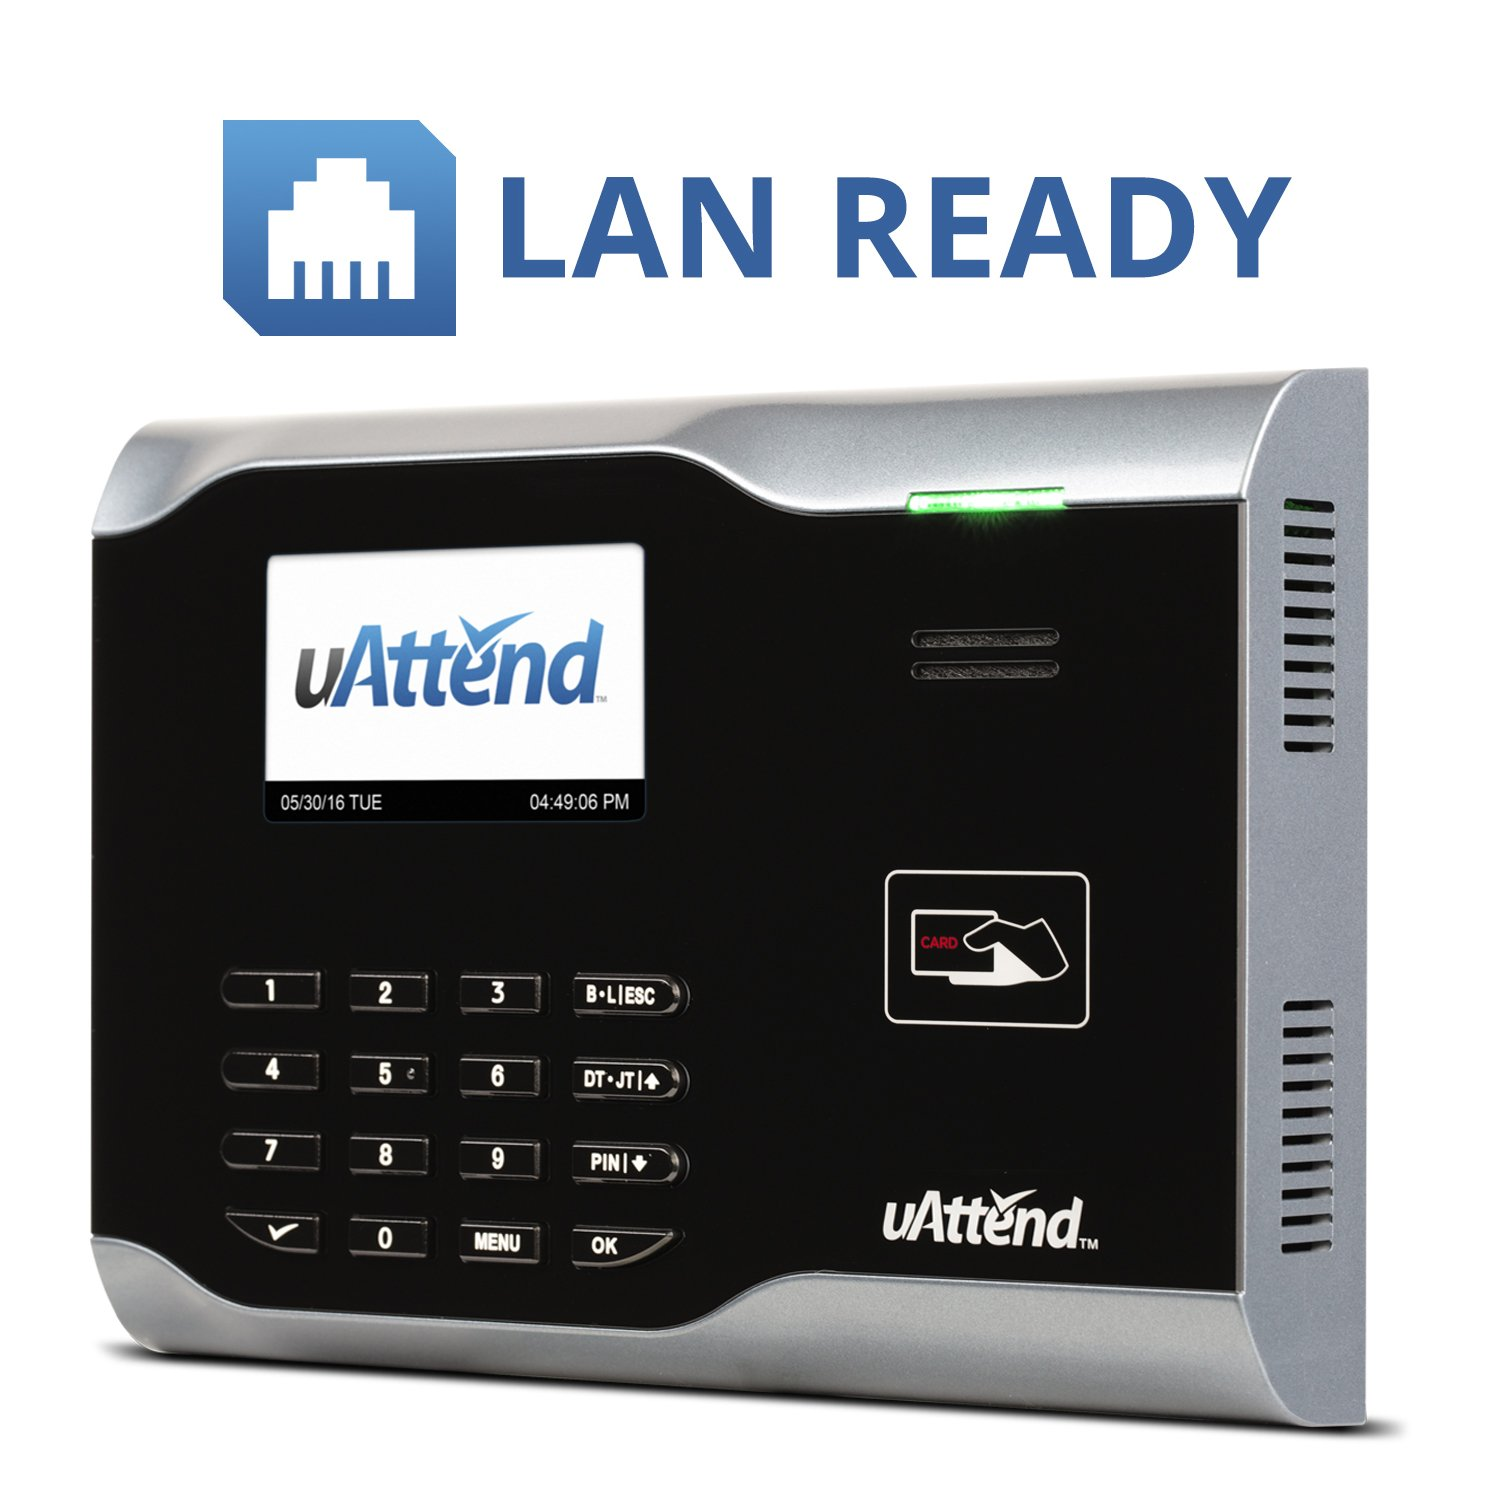 uAttend CB6000 Employee Management Time Clock by uAttend